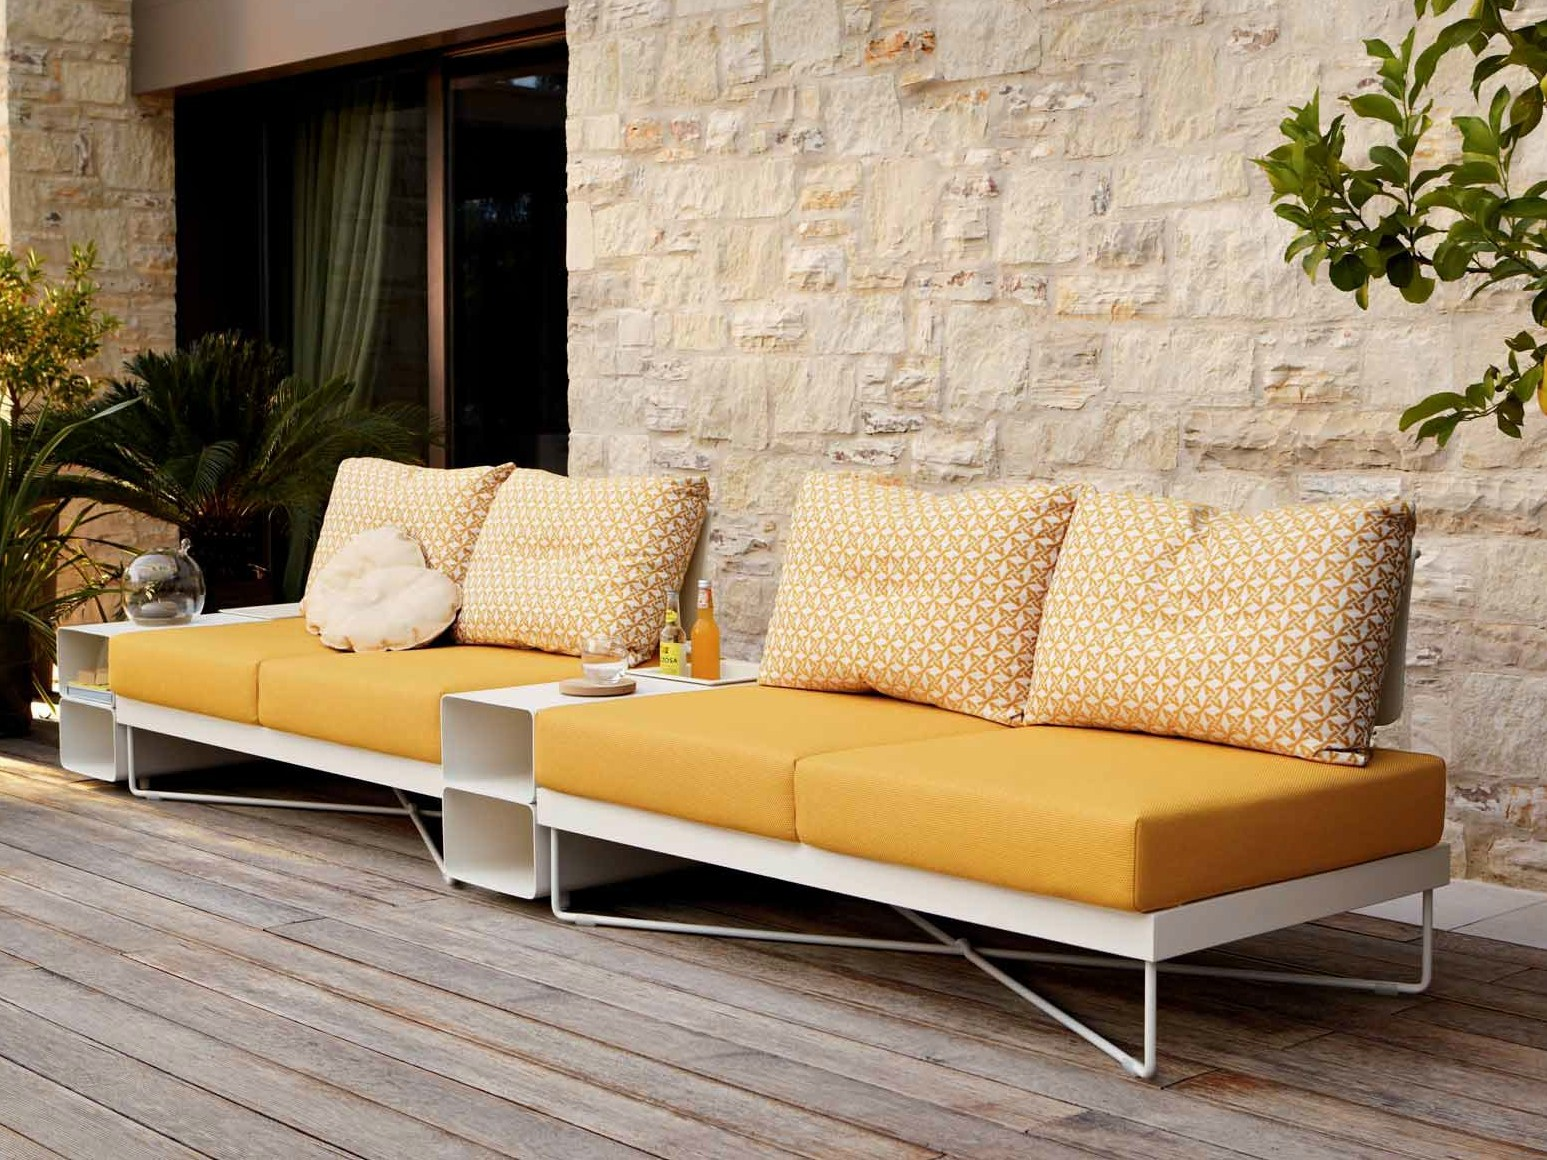 coral reef sectional garden sofa by roberti rattan. Black Bedroom Furniture Sets. Home Design Ideas